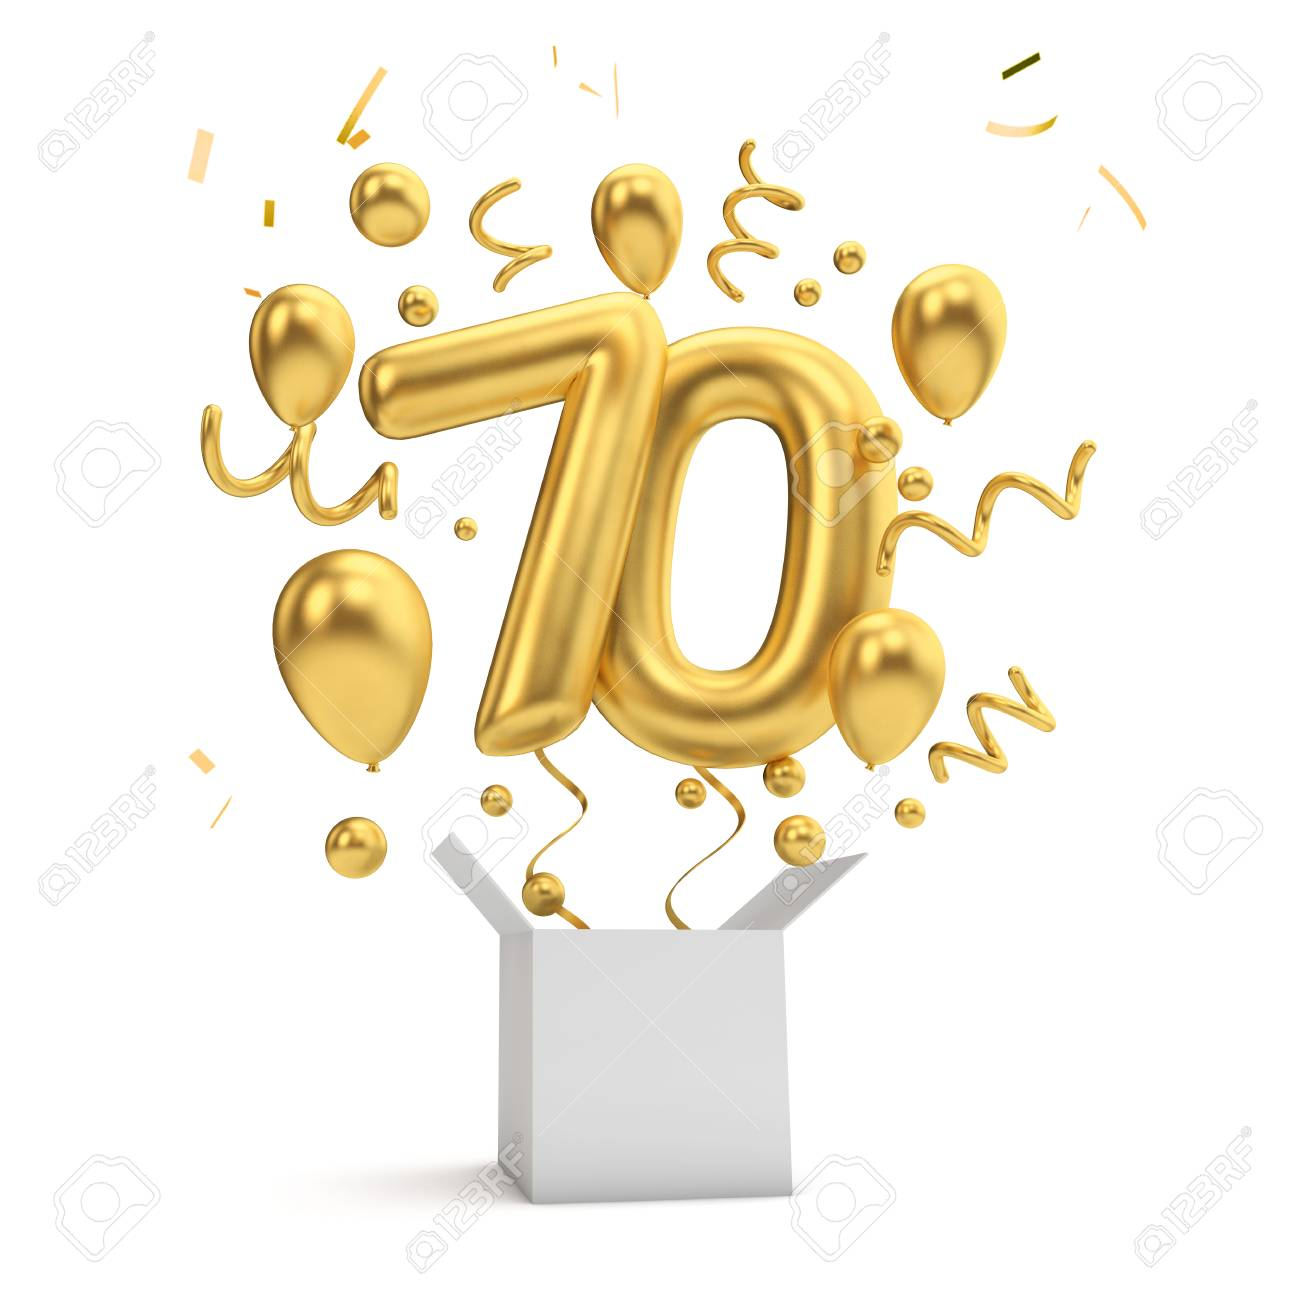 Happy 70th Birthday Gold Surprise Balloon And Box 3D Rendering Stock Photo